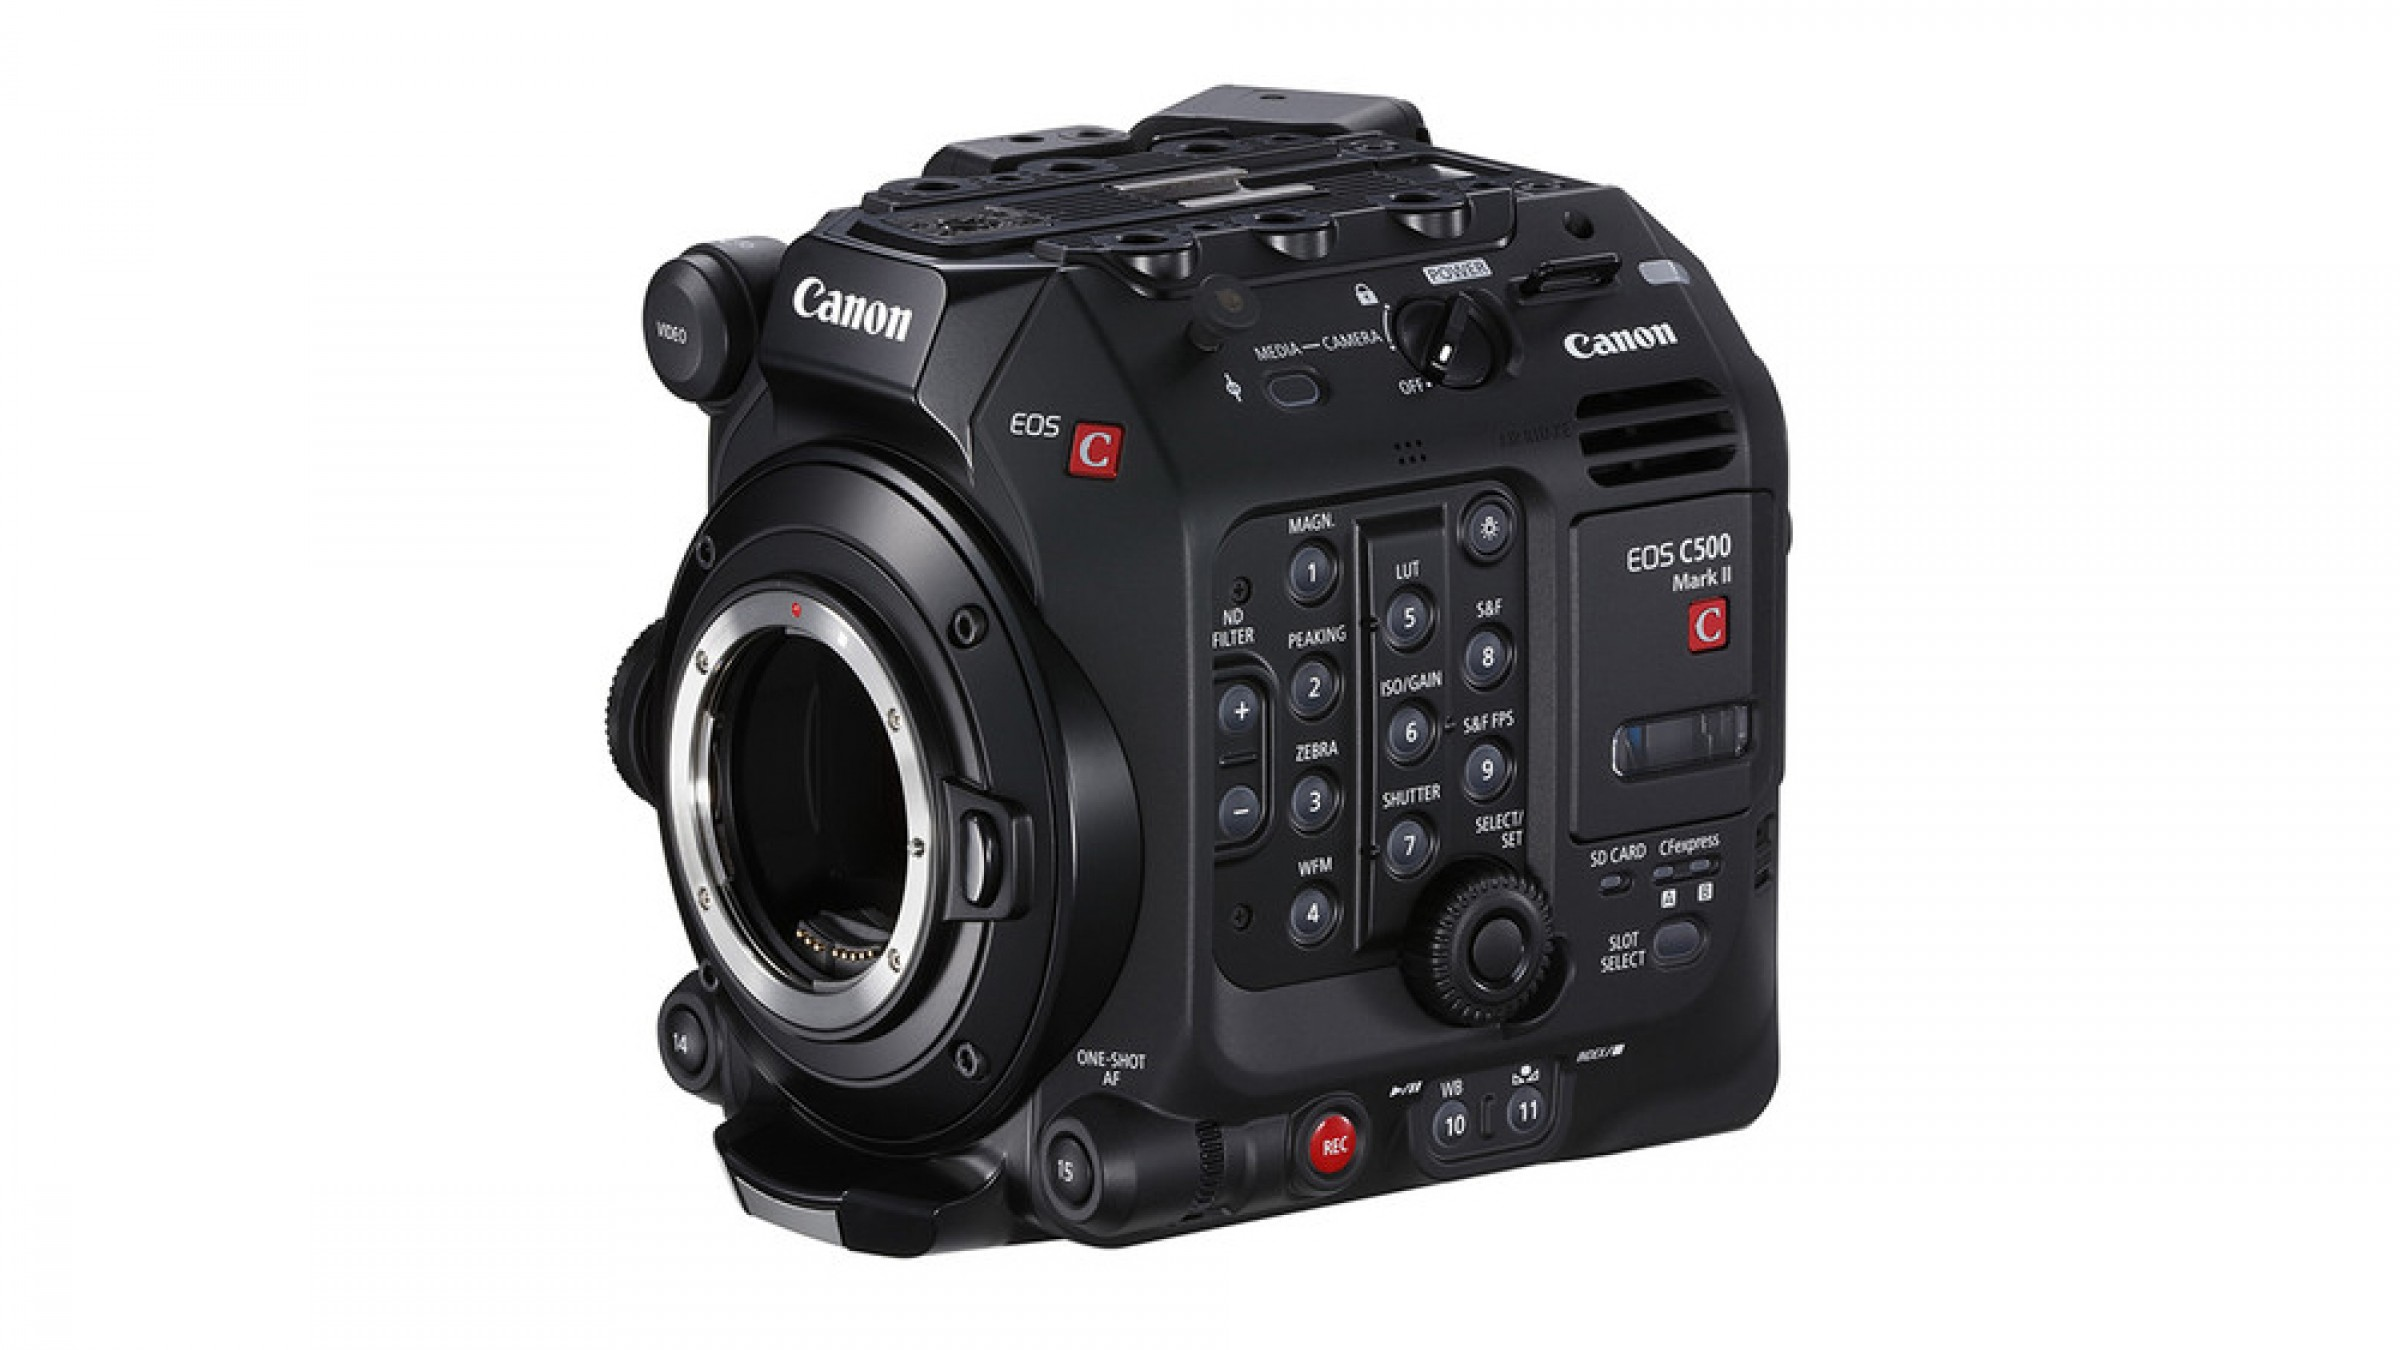 Canon EOS C500 Mark II Firmware Update V1.0.1.1 Addresses Minor Fixes